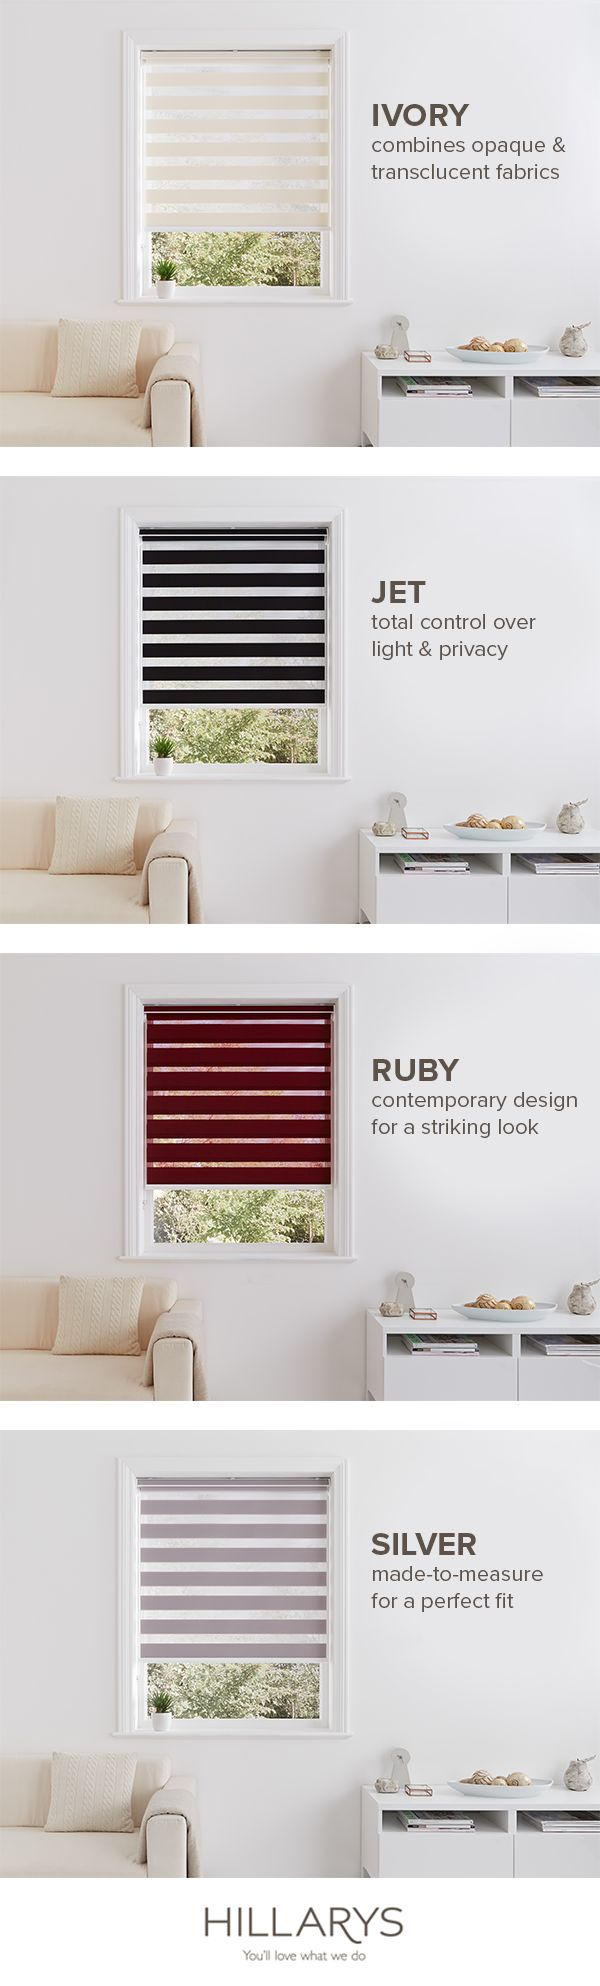 Pick a colour, any colour. Perhaps a Jet Black for your bedroom or Ruby Red for your dining room? Our Roman blinds are suit any room in your house. Take the stress out of home interiors with Hillarys.